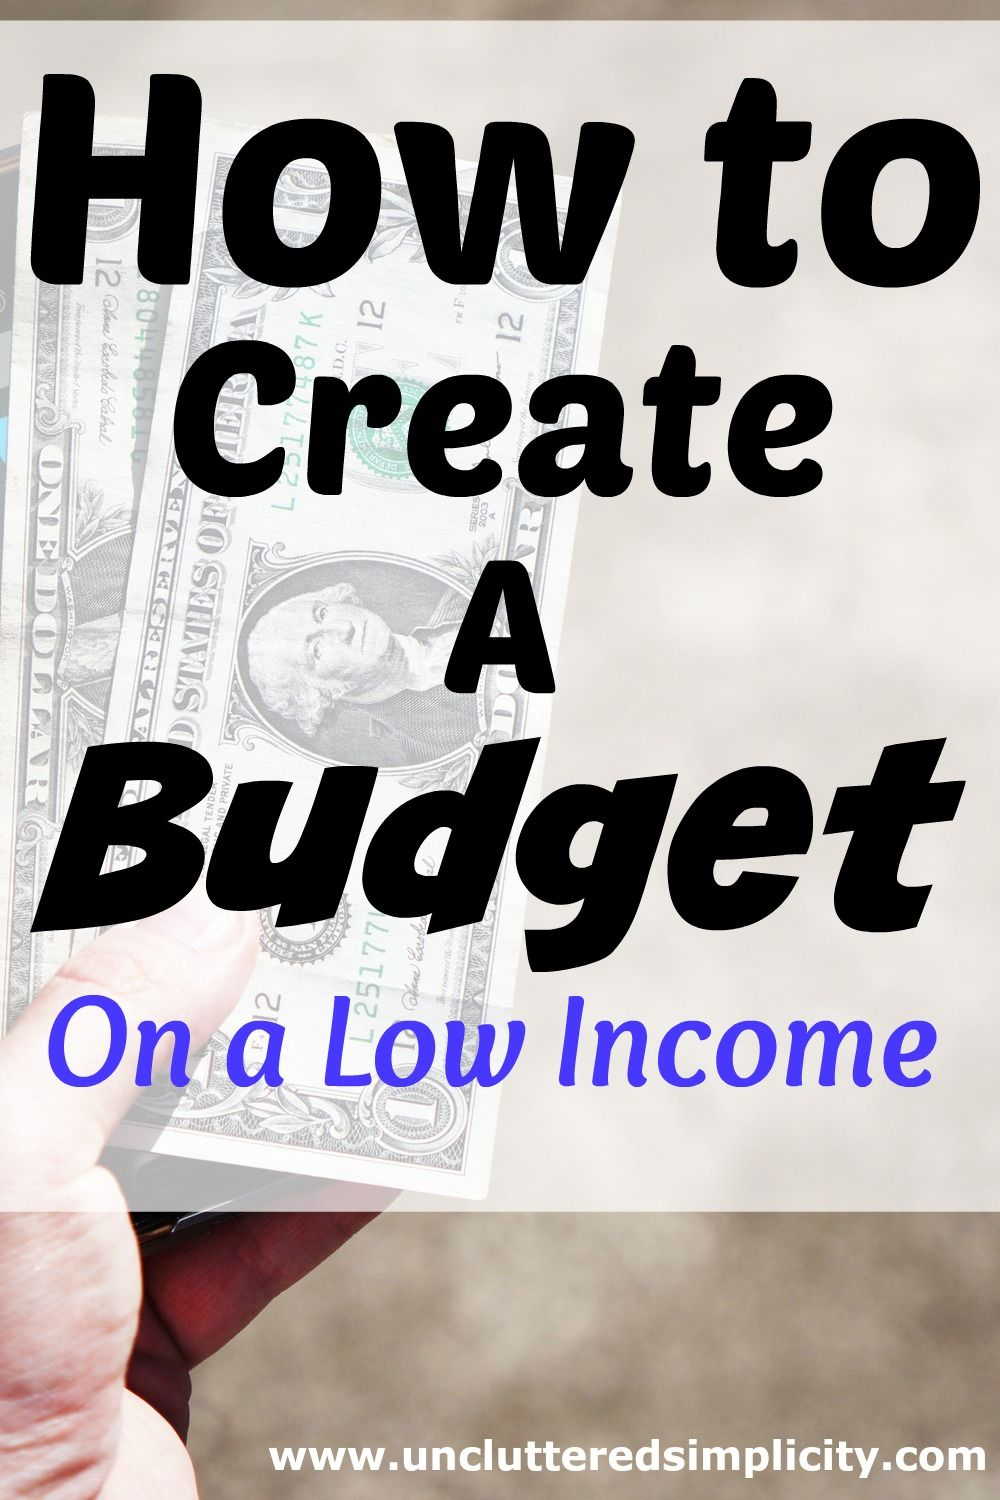 Are you a low income family struggling to live within your means? I'll